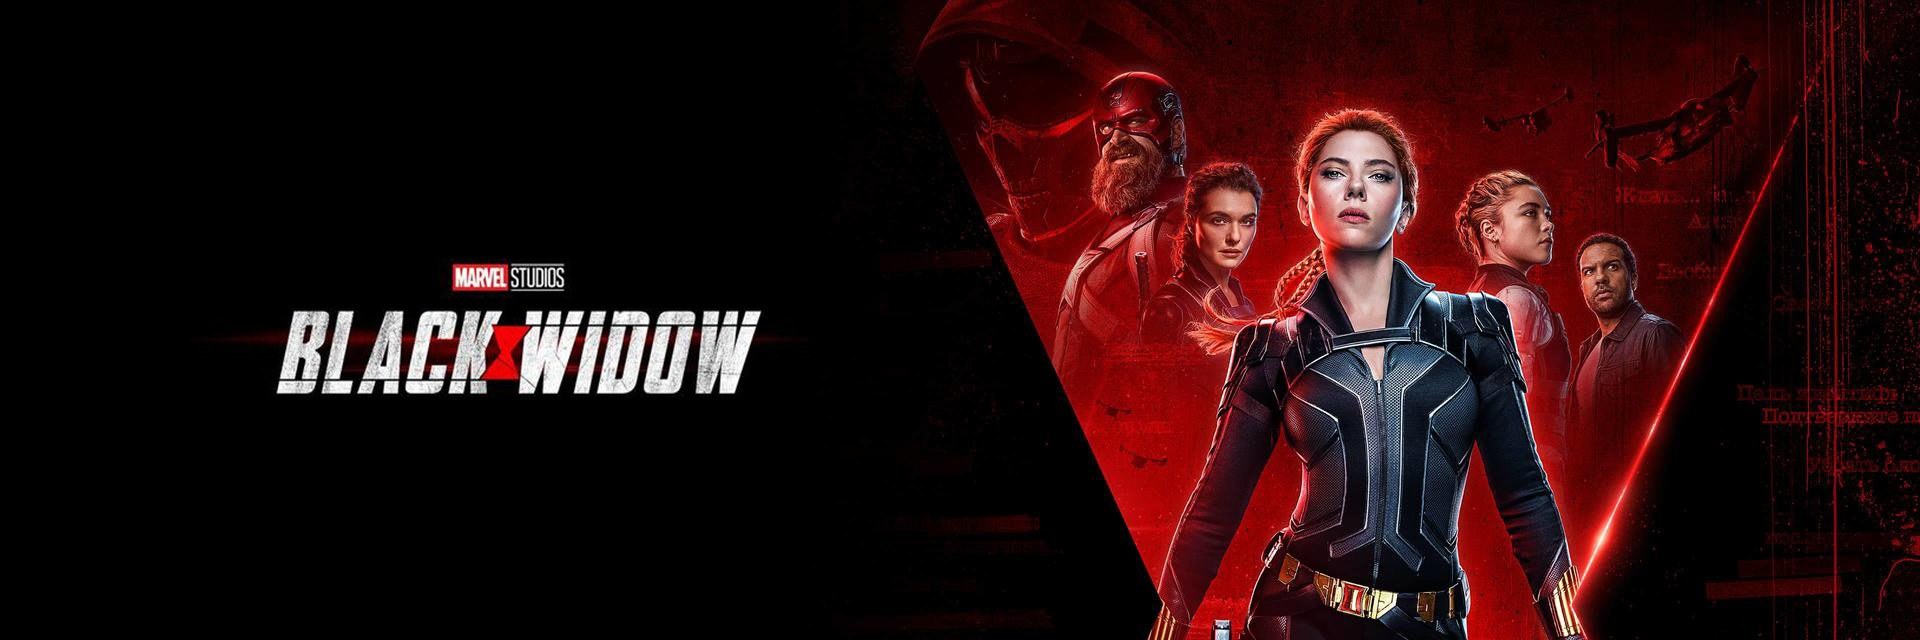 Black Widow character hi res posters Movie Wallpapers 1920x640